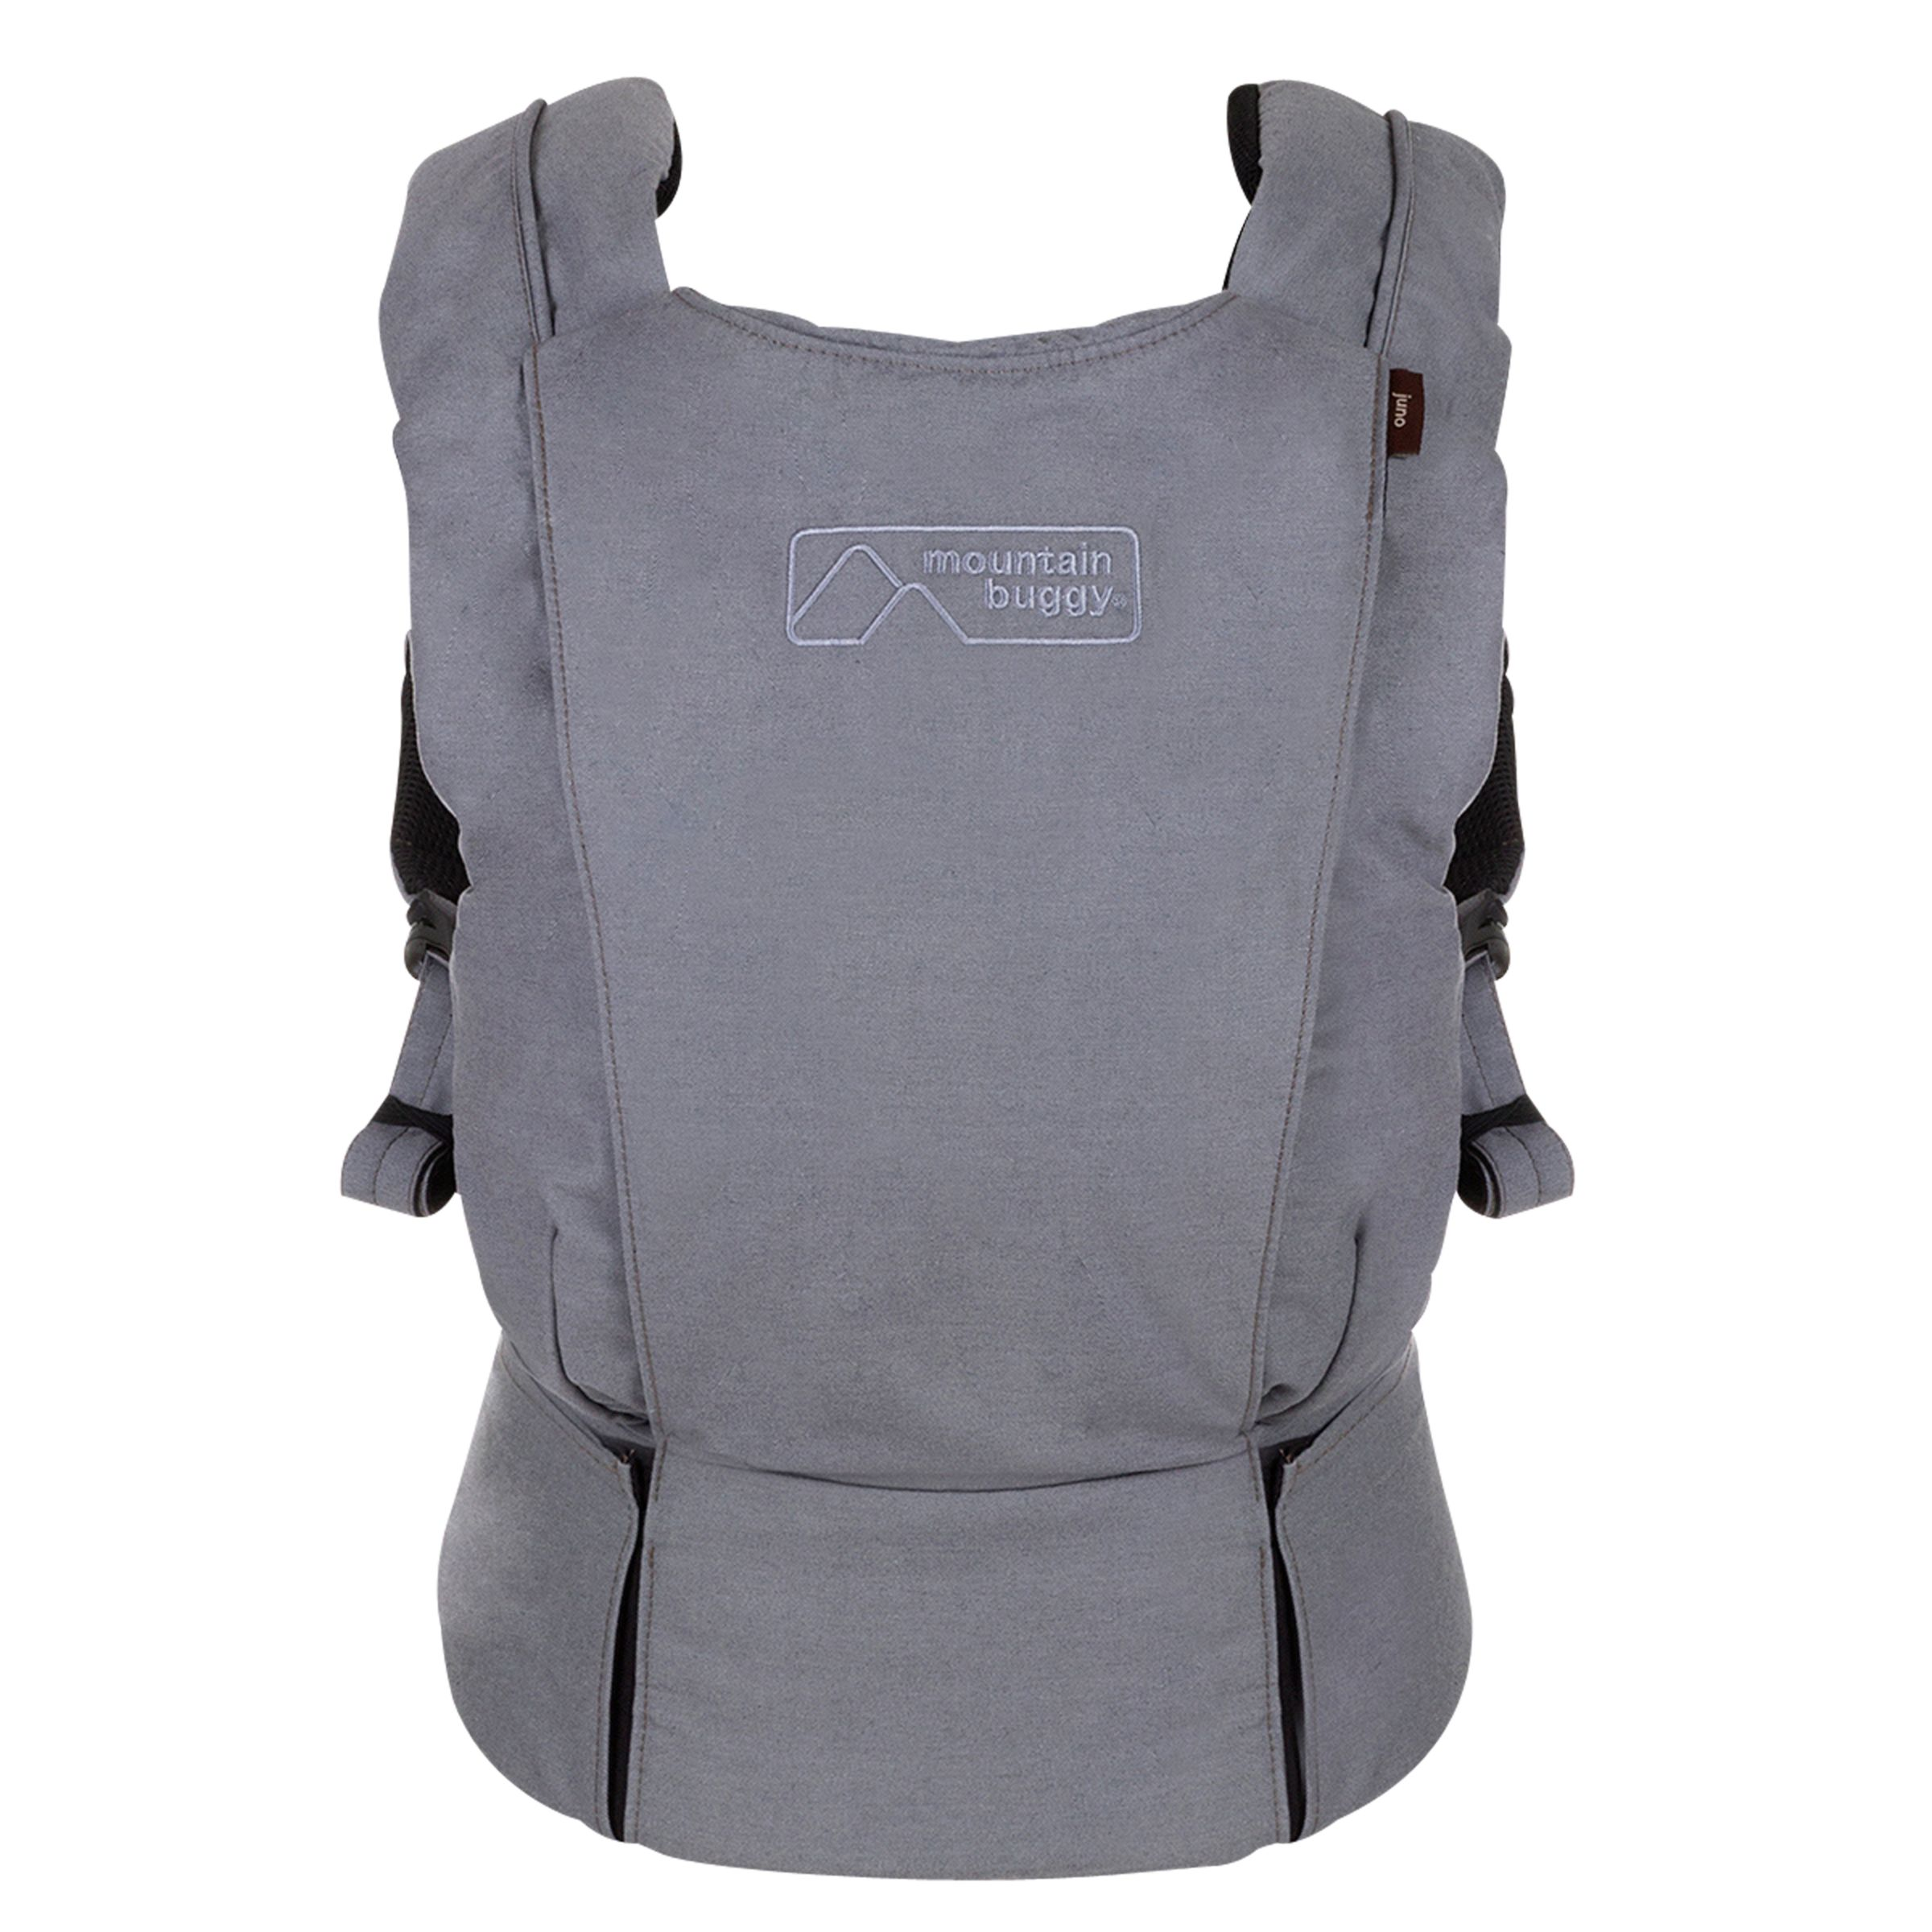 Mountain Buggy Mountain Buggy Juno Baby Carrier, Charcoal Grey